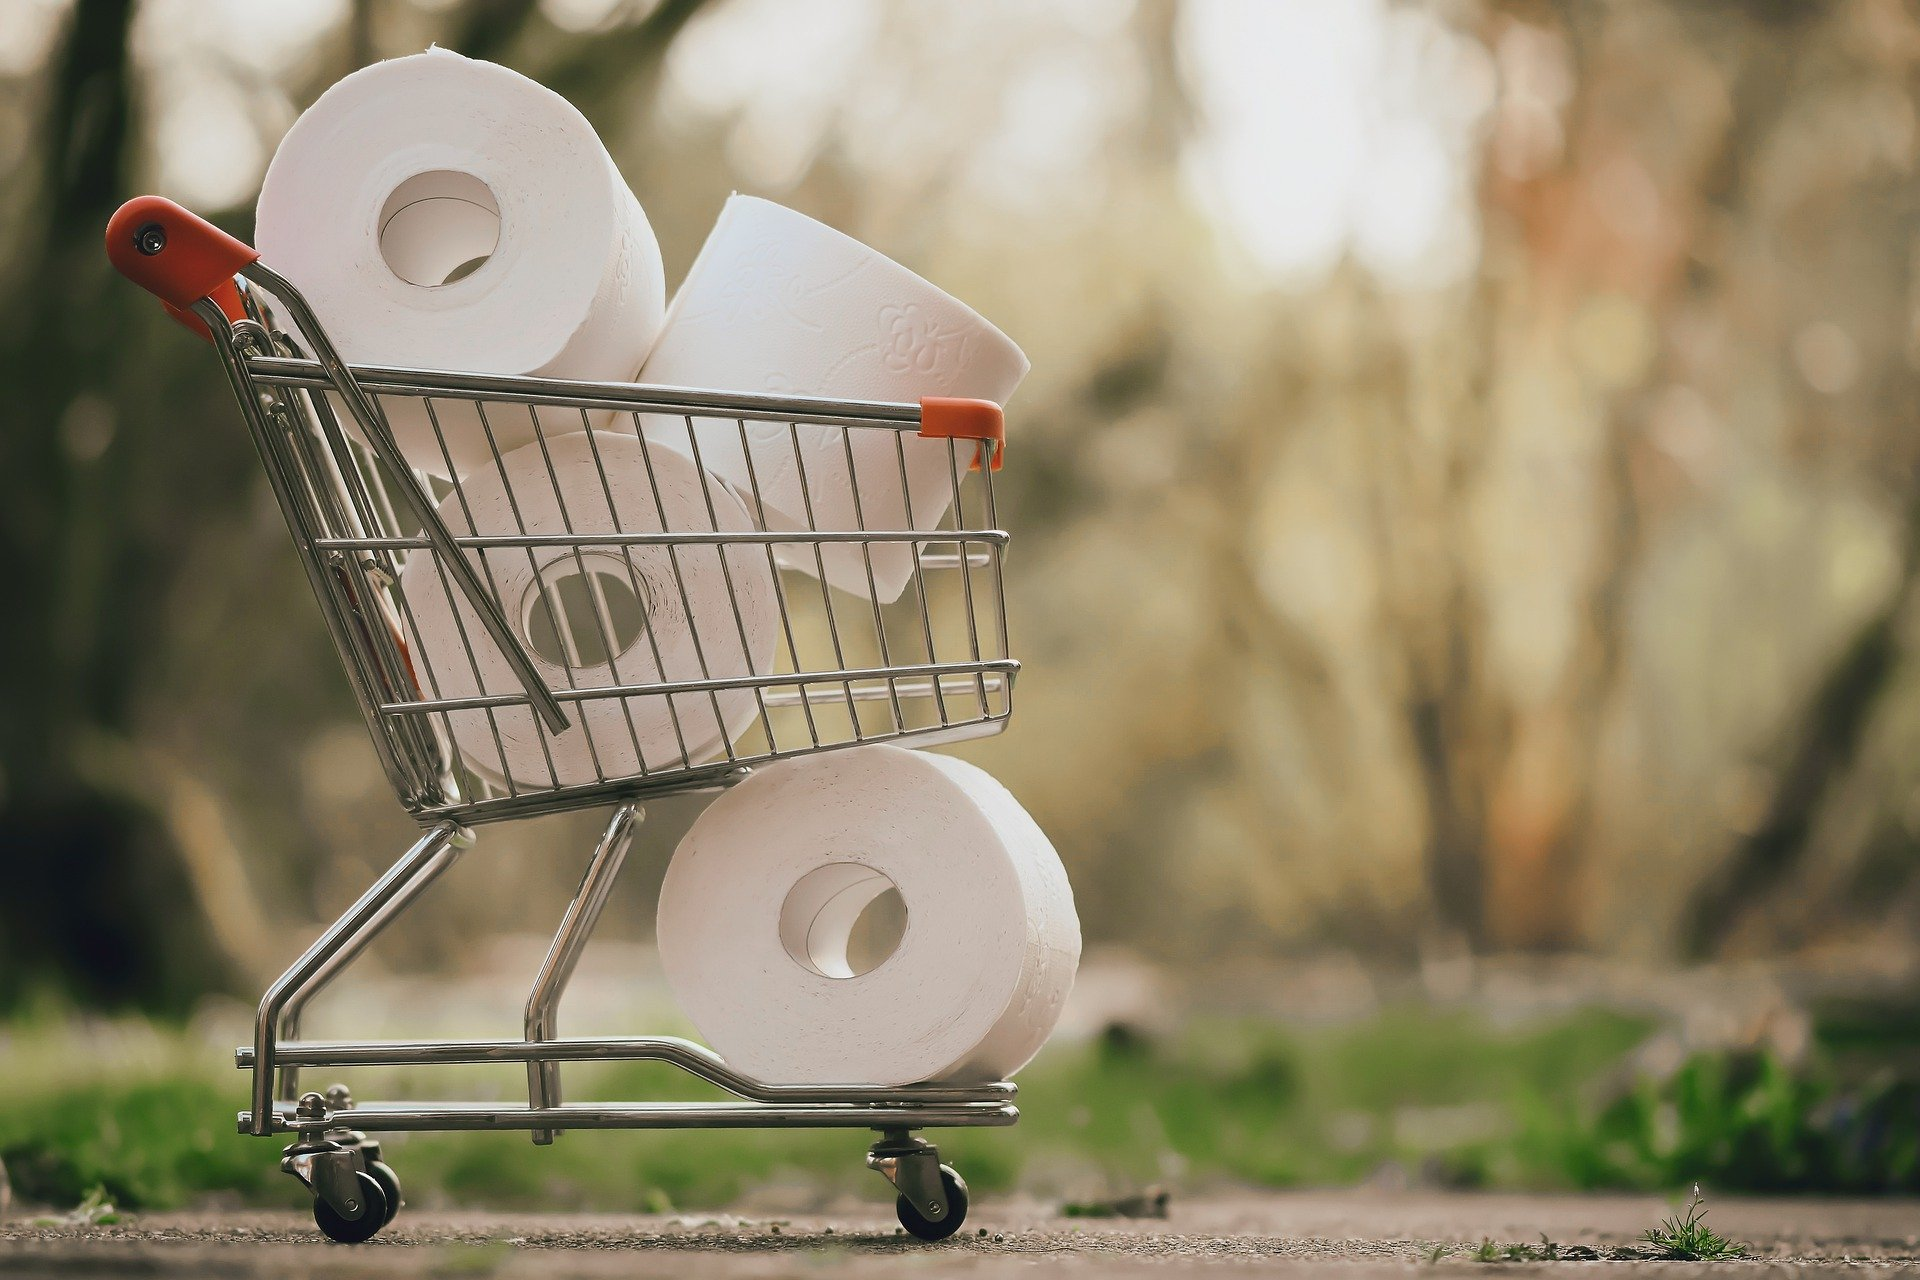 A debt crisis is breaking out in light of the coronavirus, hoarding, and inflated costs for basic necessities such as toilet paper.